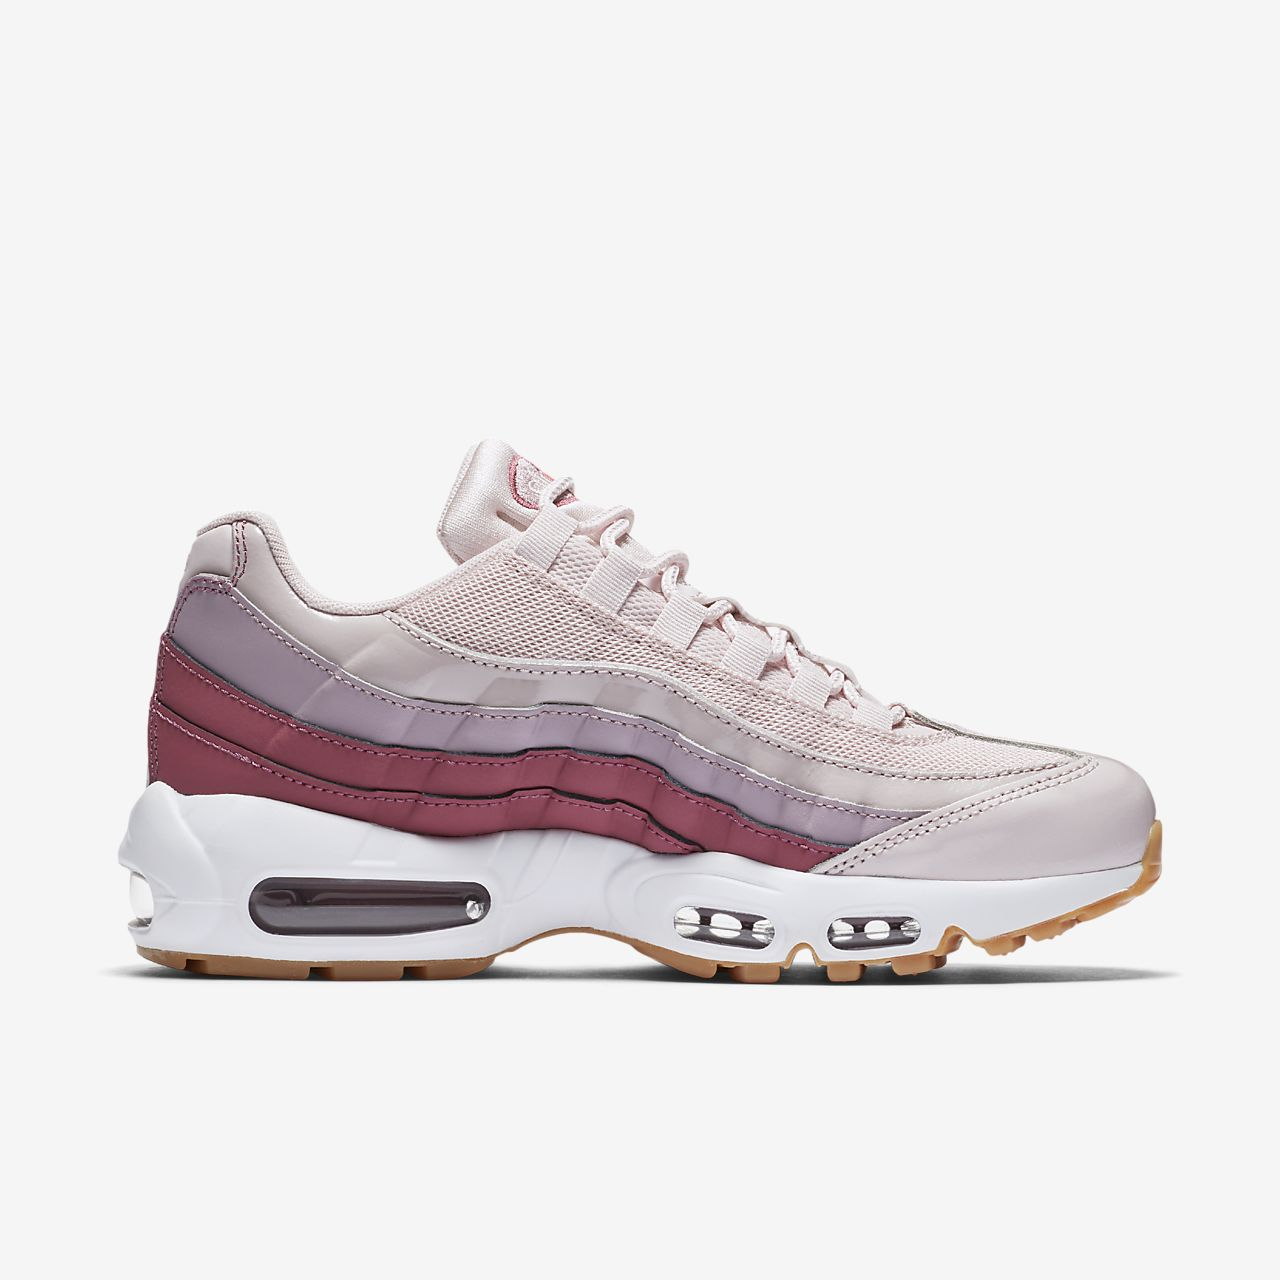 nike air max 95 og women 39 s shoe. Black Bedroom Furniture Sets. Home Design Ideas